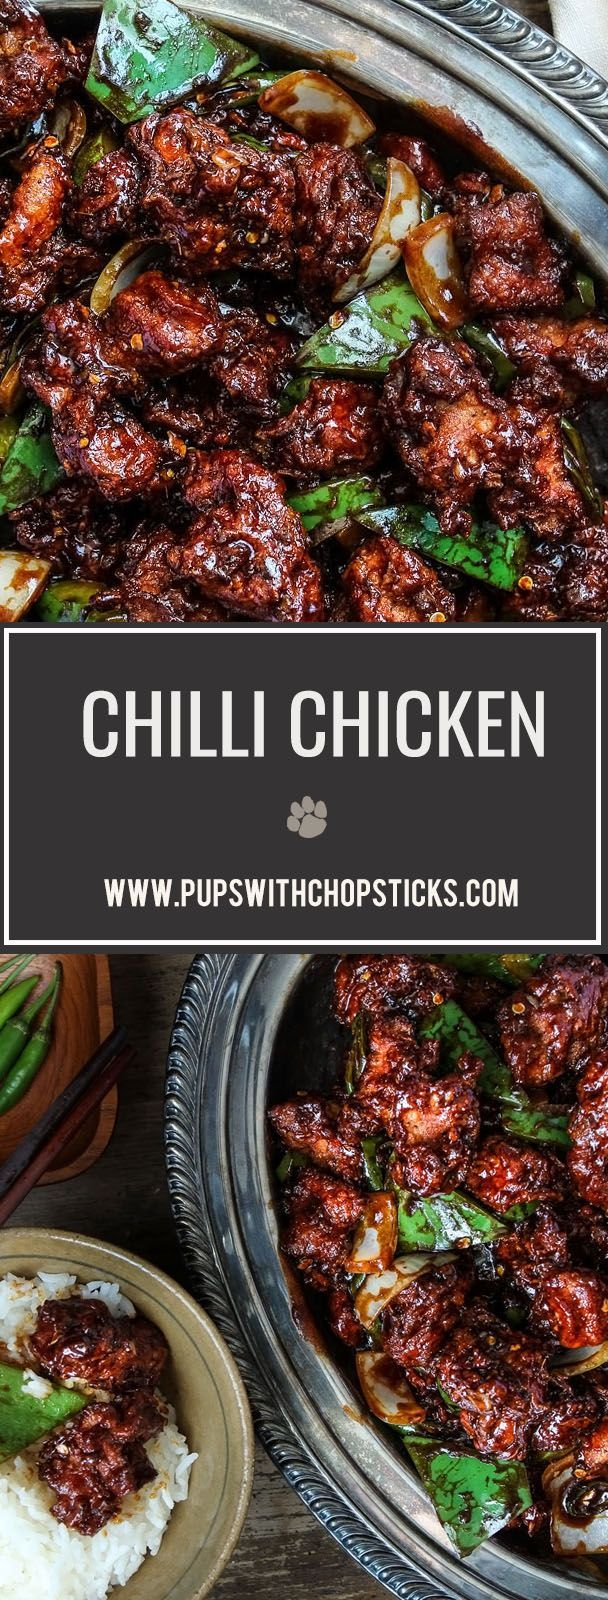 A popular and delicious Hakka, Indian Chinese takeout dish, Chilli chicken is made with crispy chicken chunks tossed in a spicy chilli sauce.